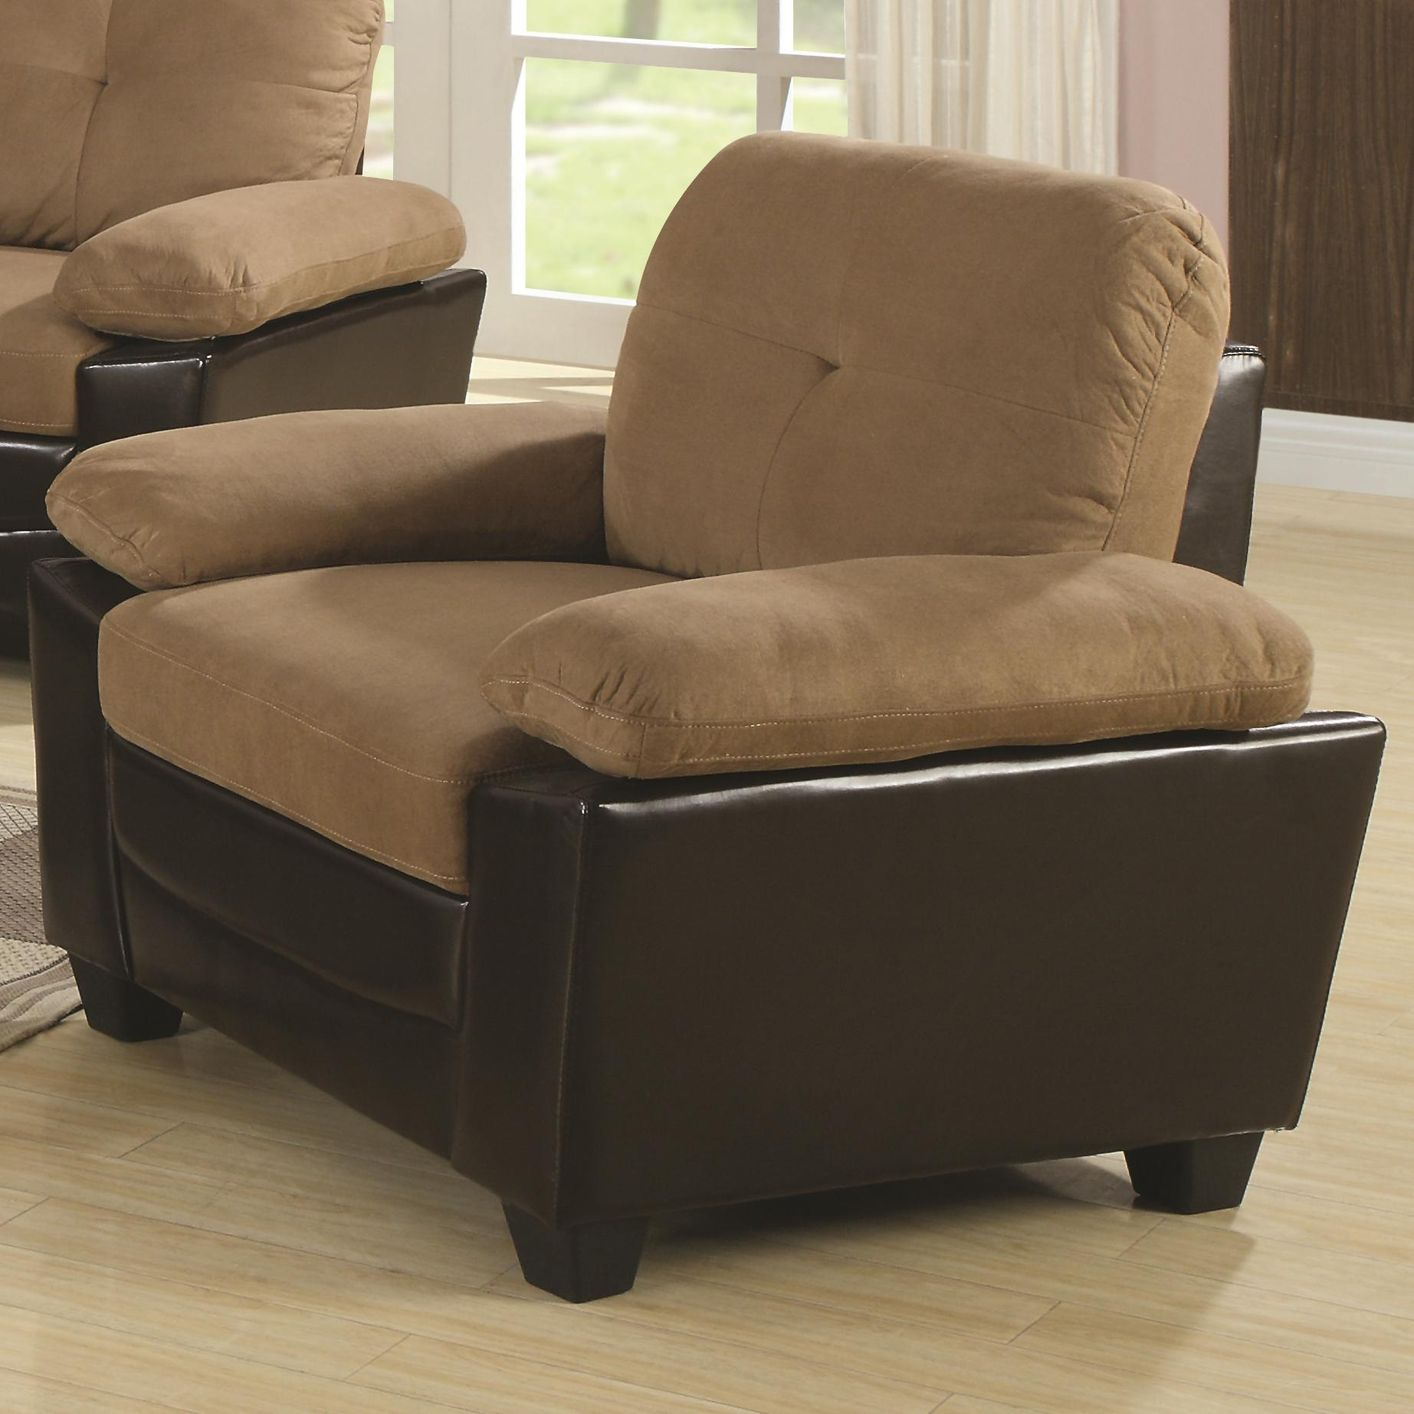 Mika Beige Microfiber Chair Steal A Sofa Furniture Outlet Los